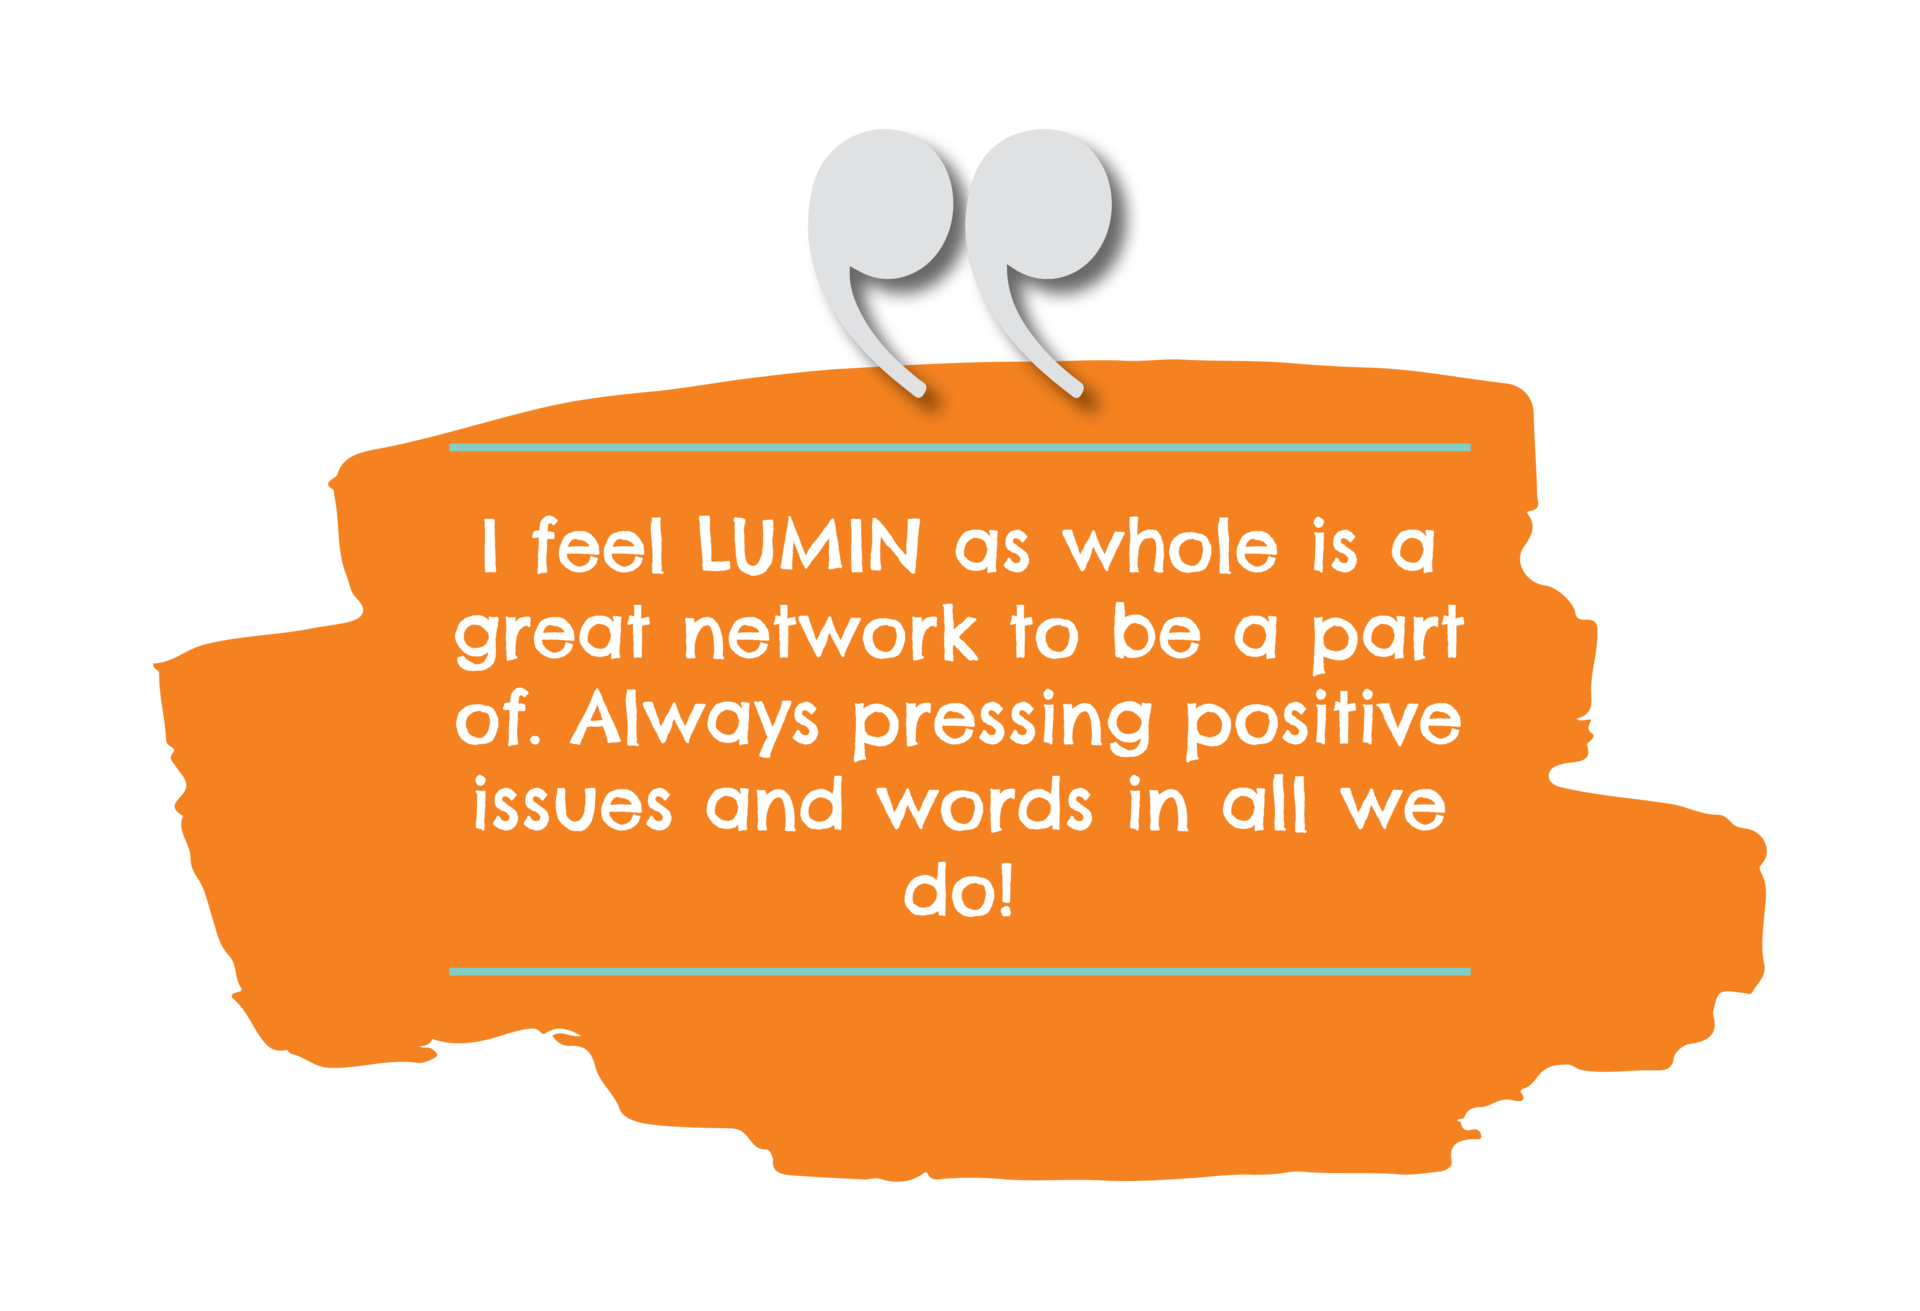 feel LUMIN as whole is a great network to be a part of. Always pressing positive issues and words in all we do!